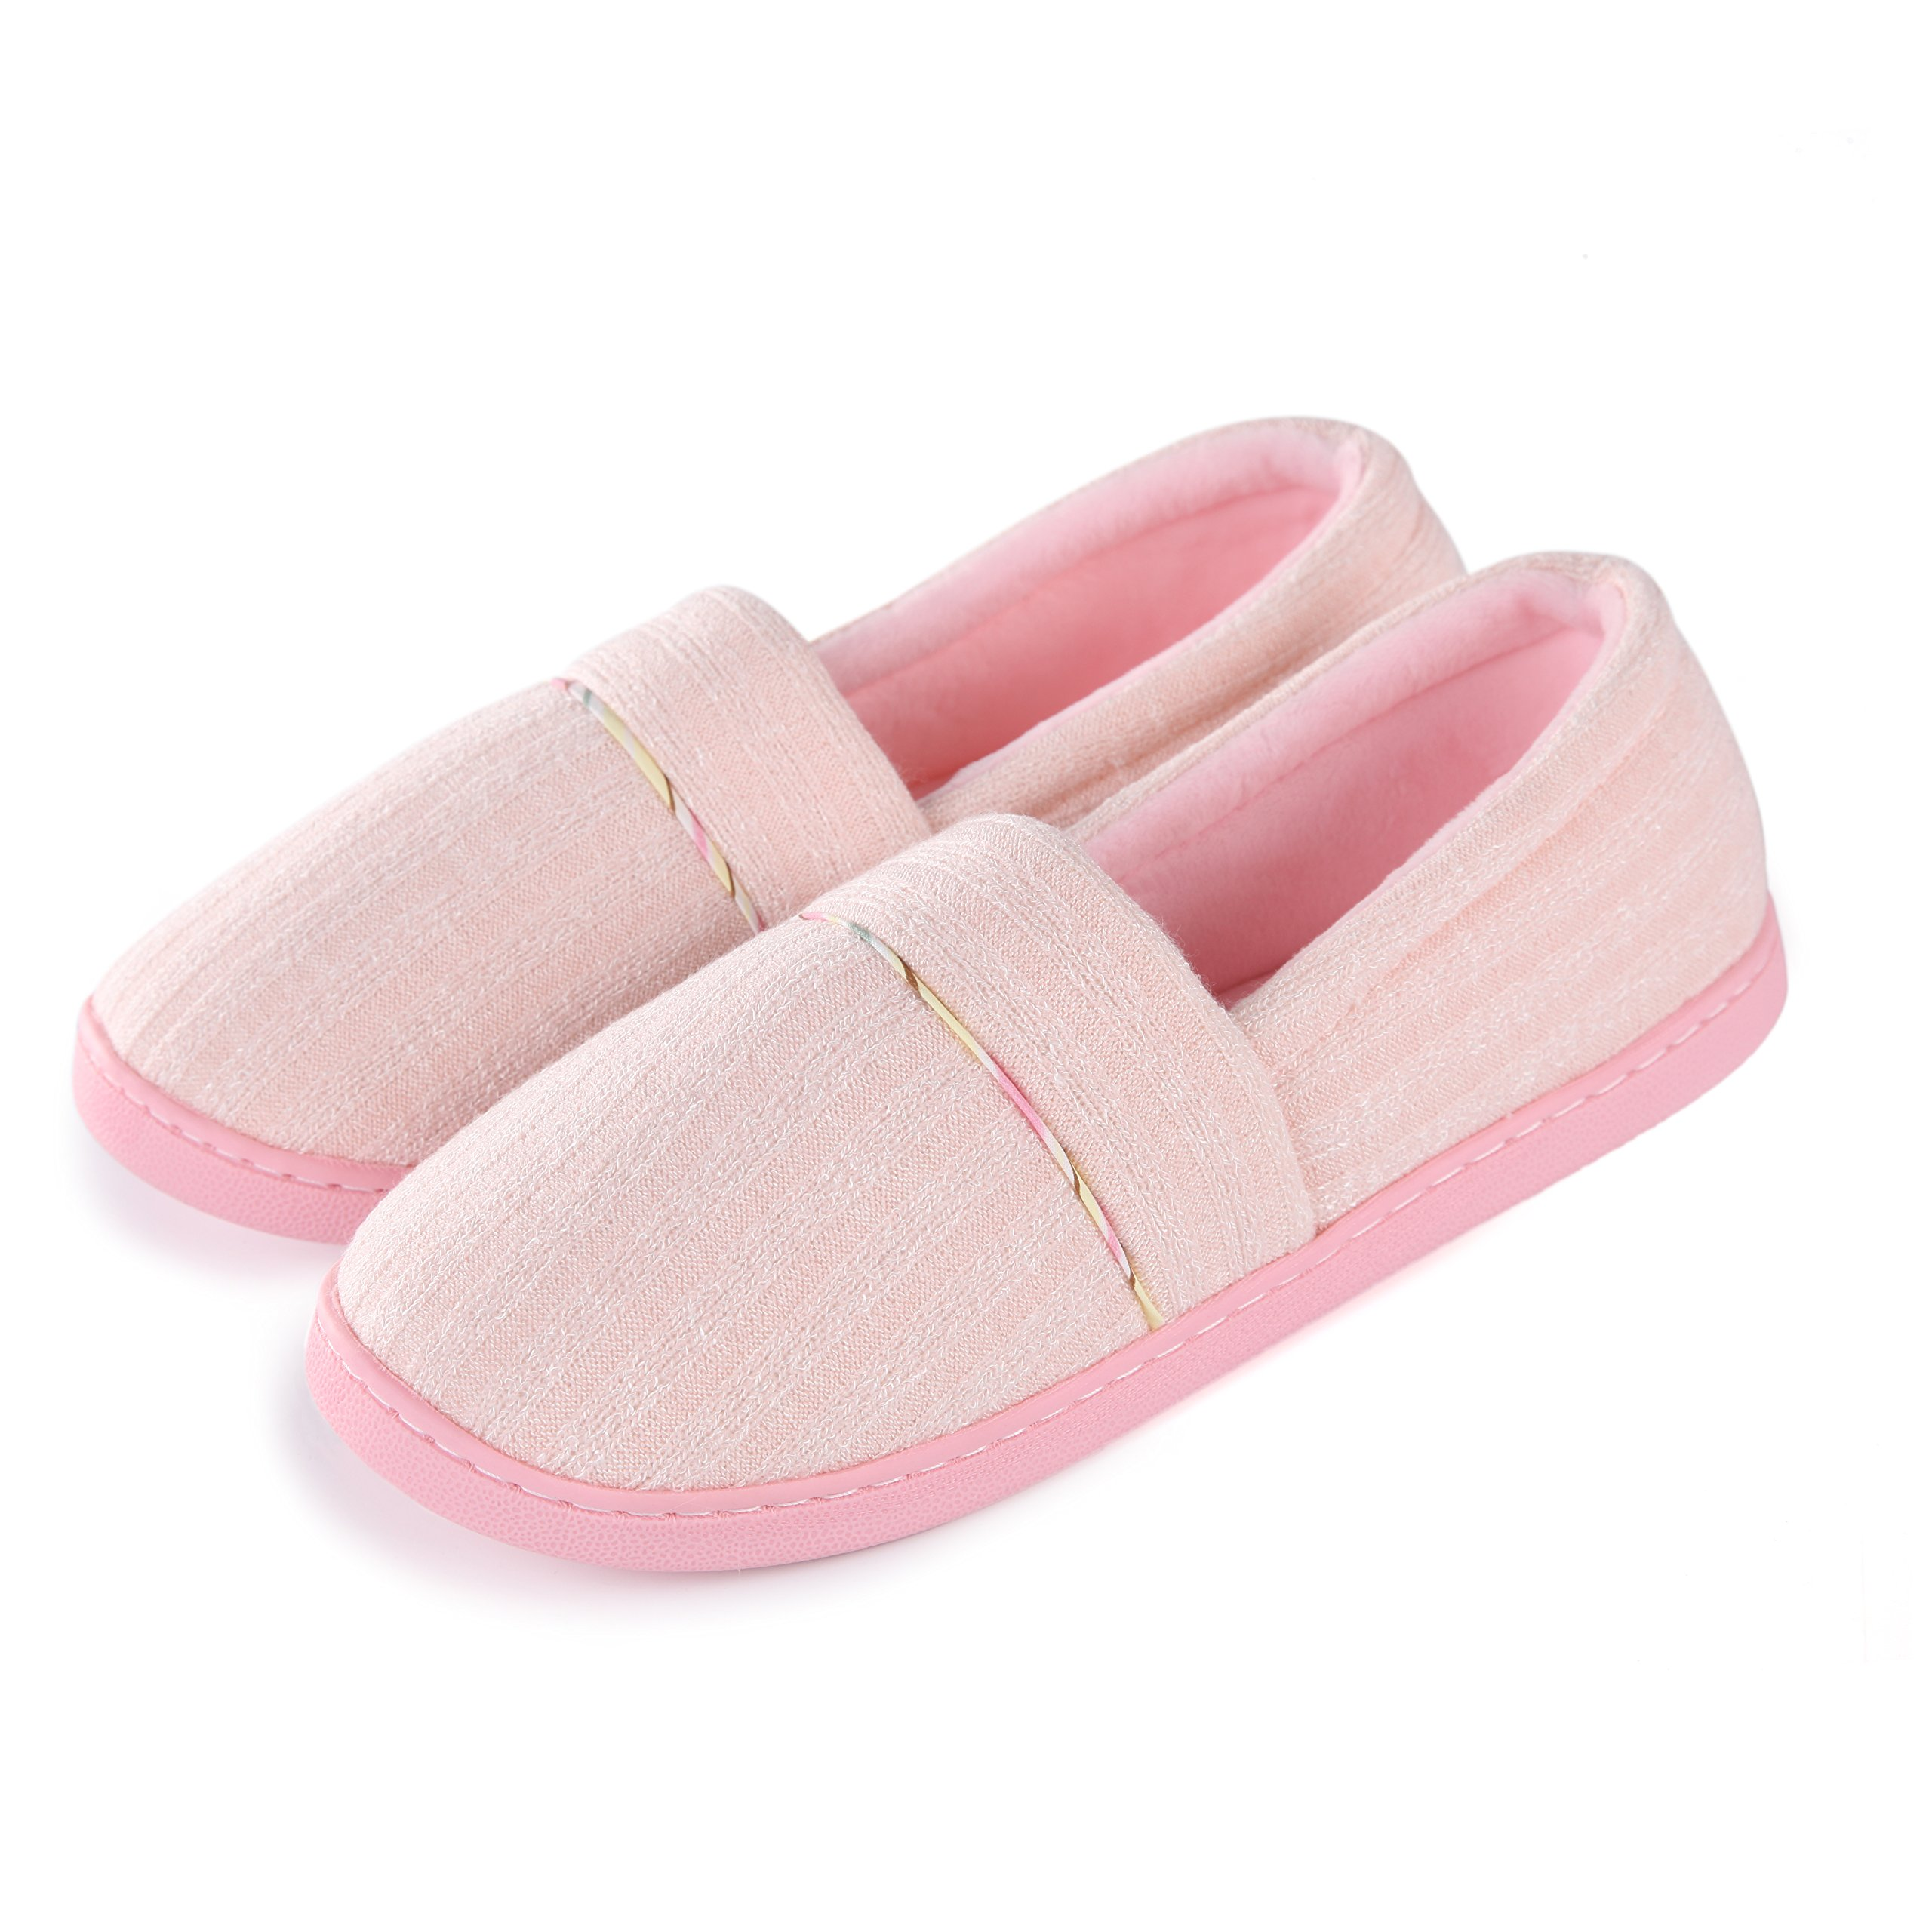 Cellicigal Women Cotton Knit Anti-Slip Comfort Indoor Slippers Slip-On Bedroom Home Shoes (8-8.5, Pink)